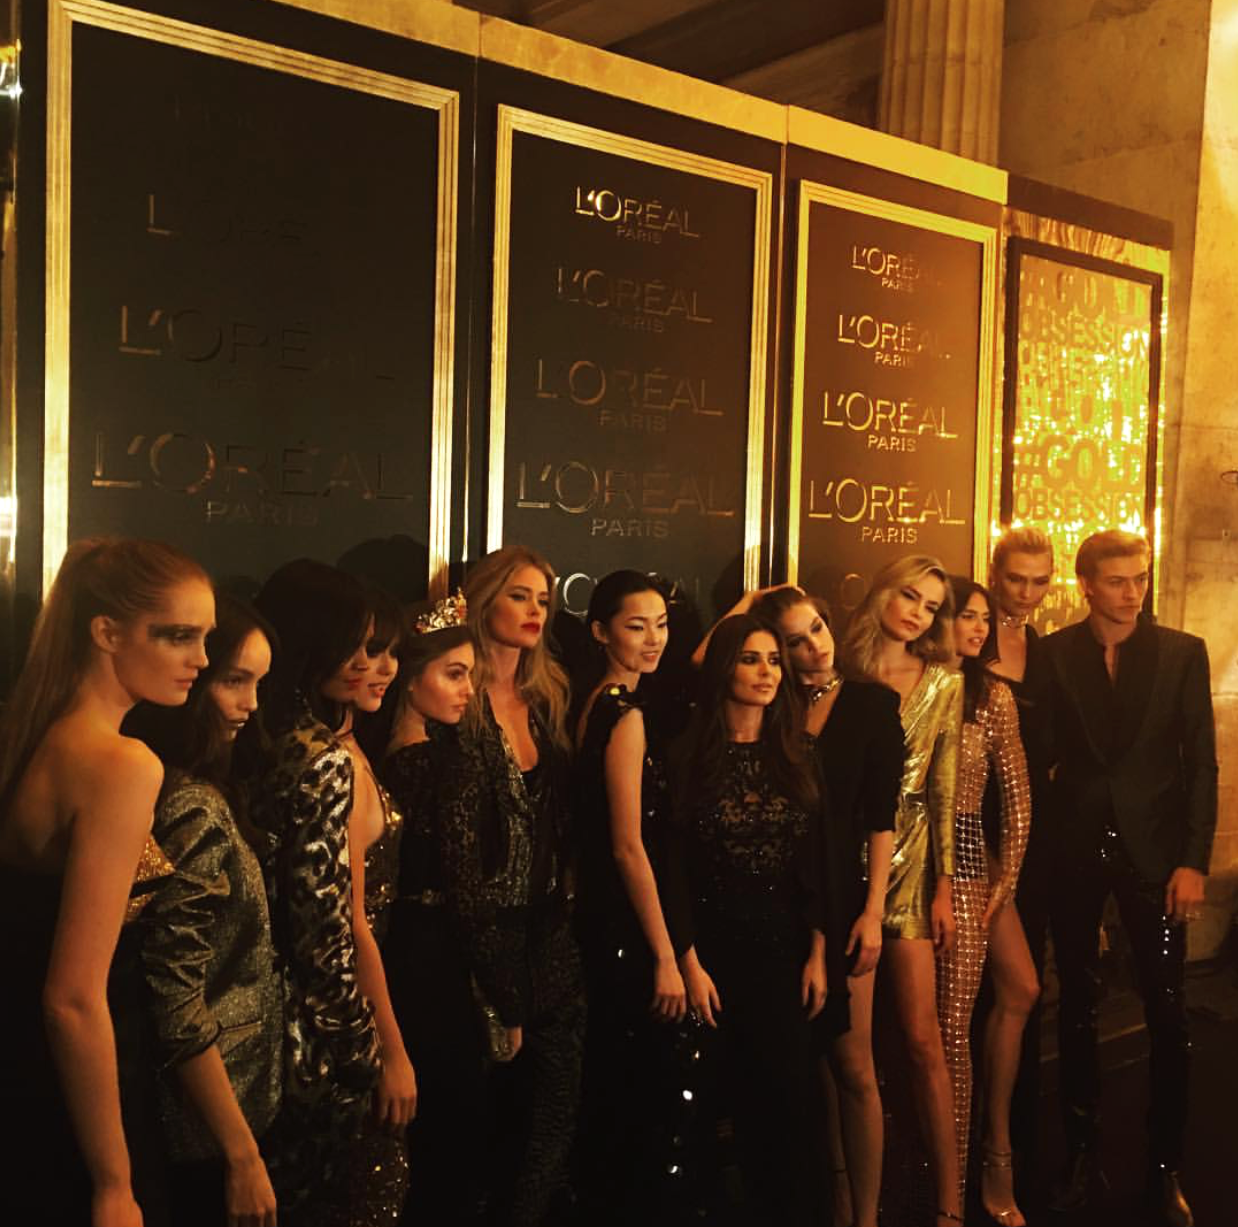 loreal-gold-obsession-party-paris-7